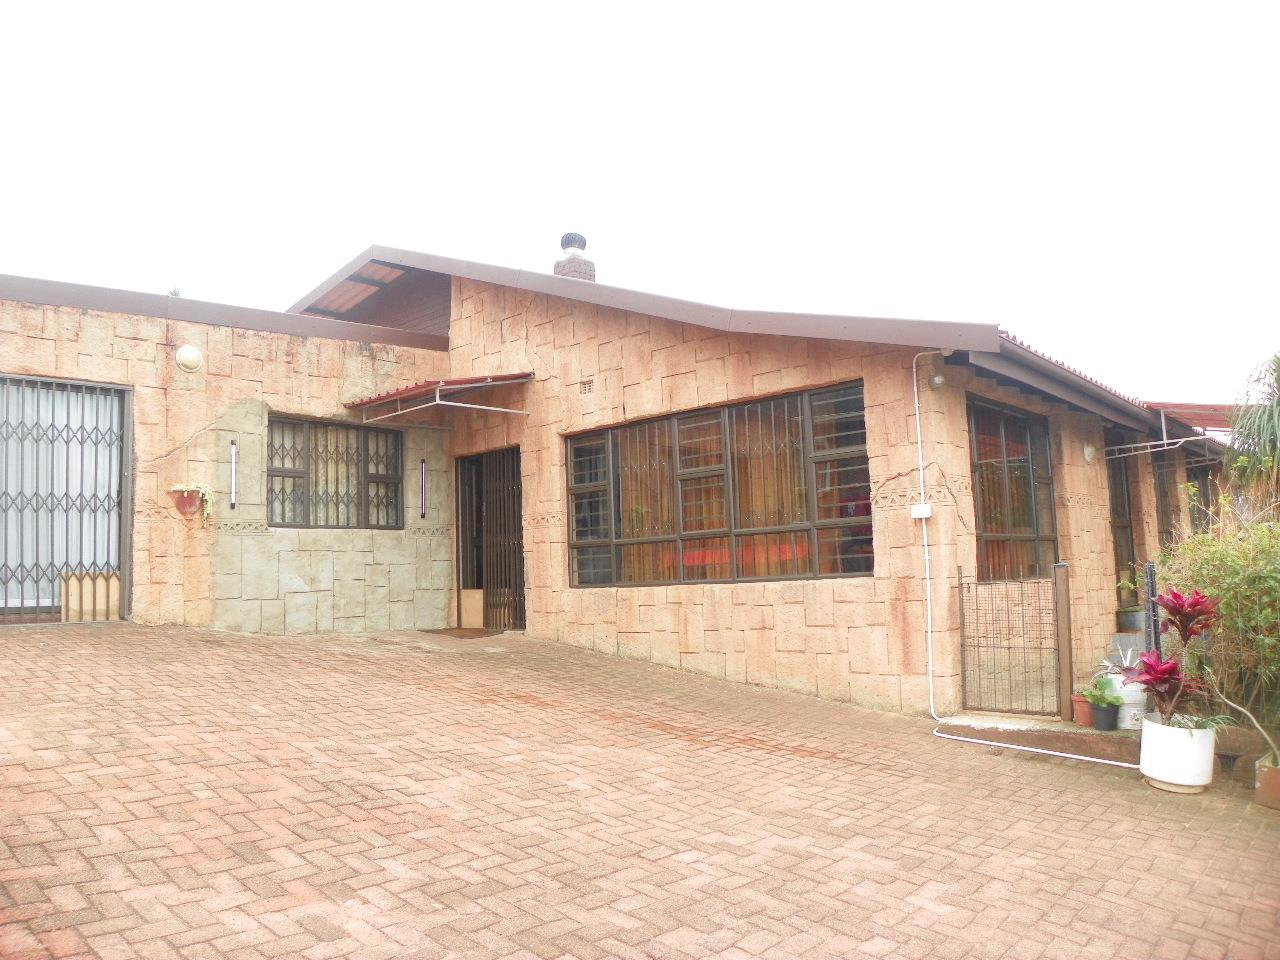 6 bedroom House in Mtwalume | RE/MAX